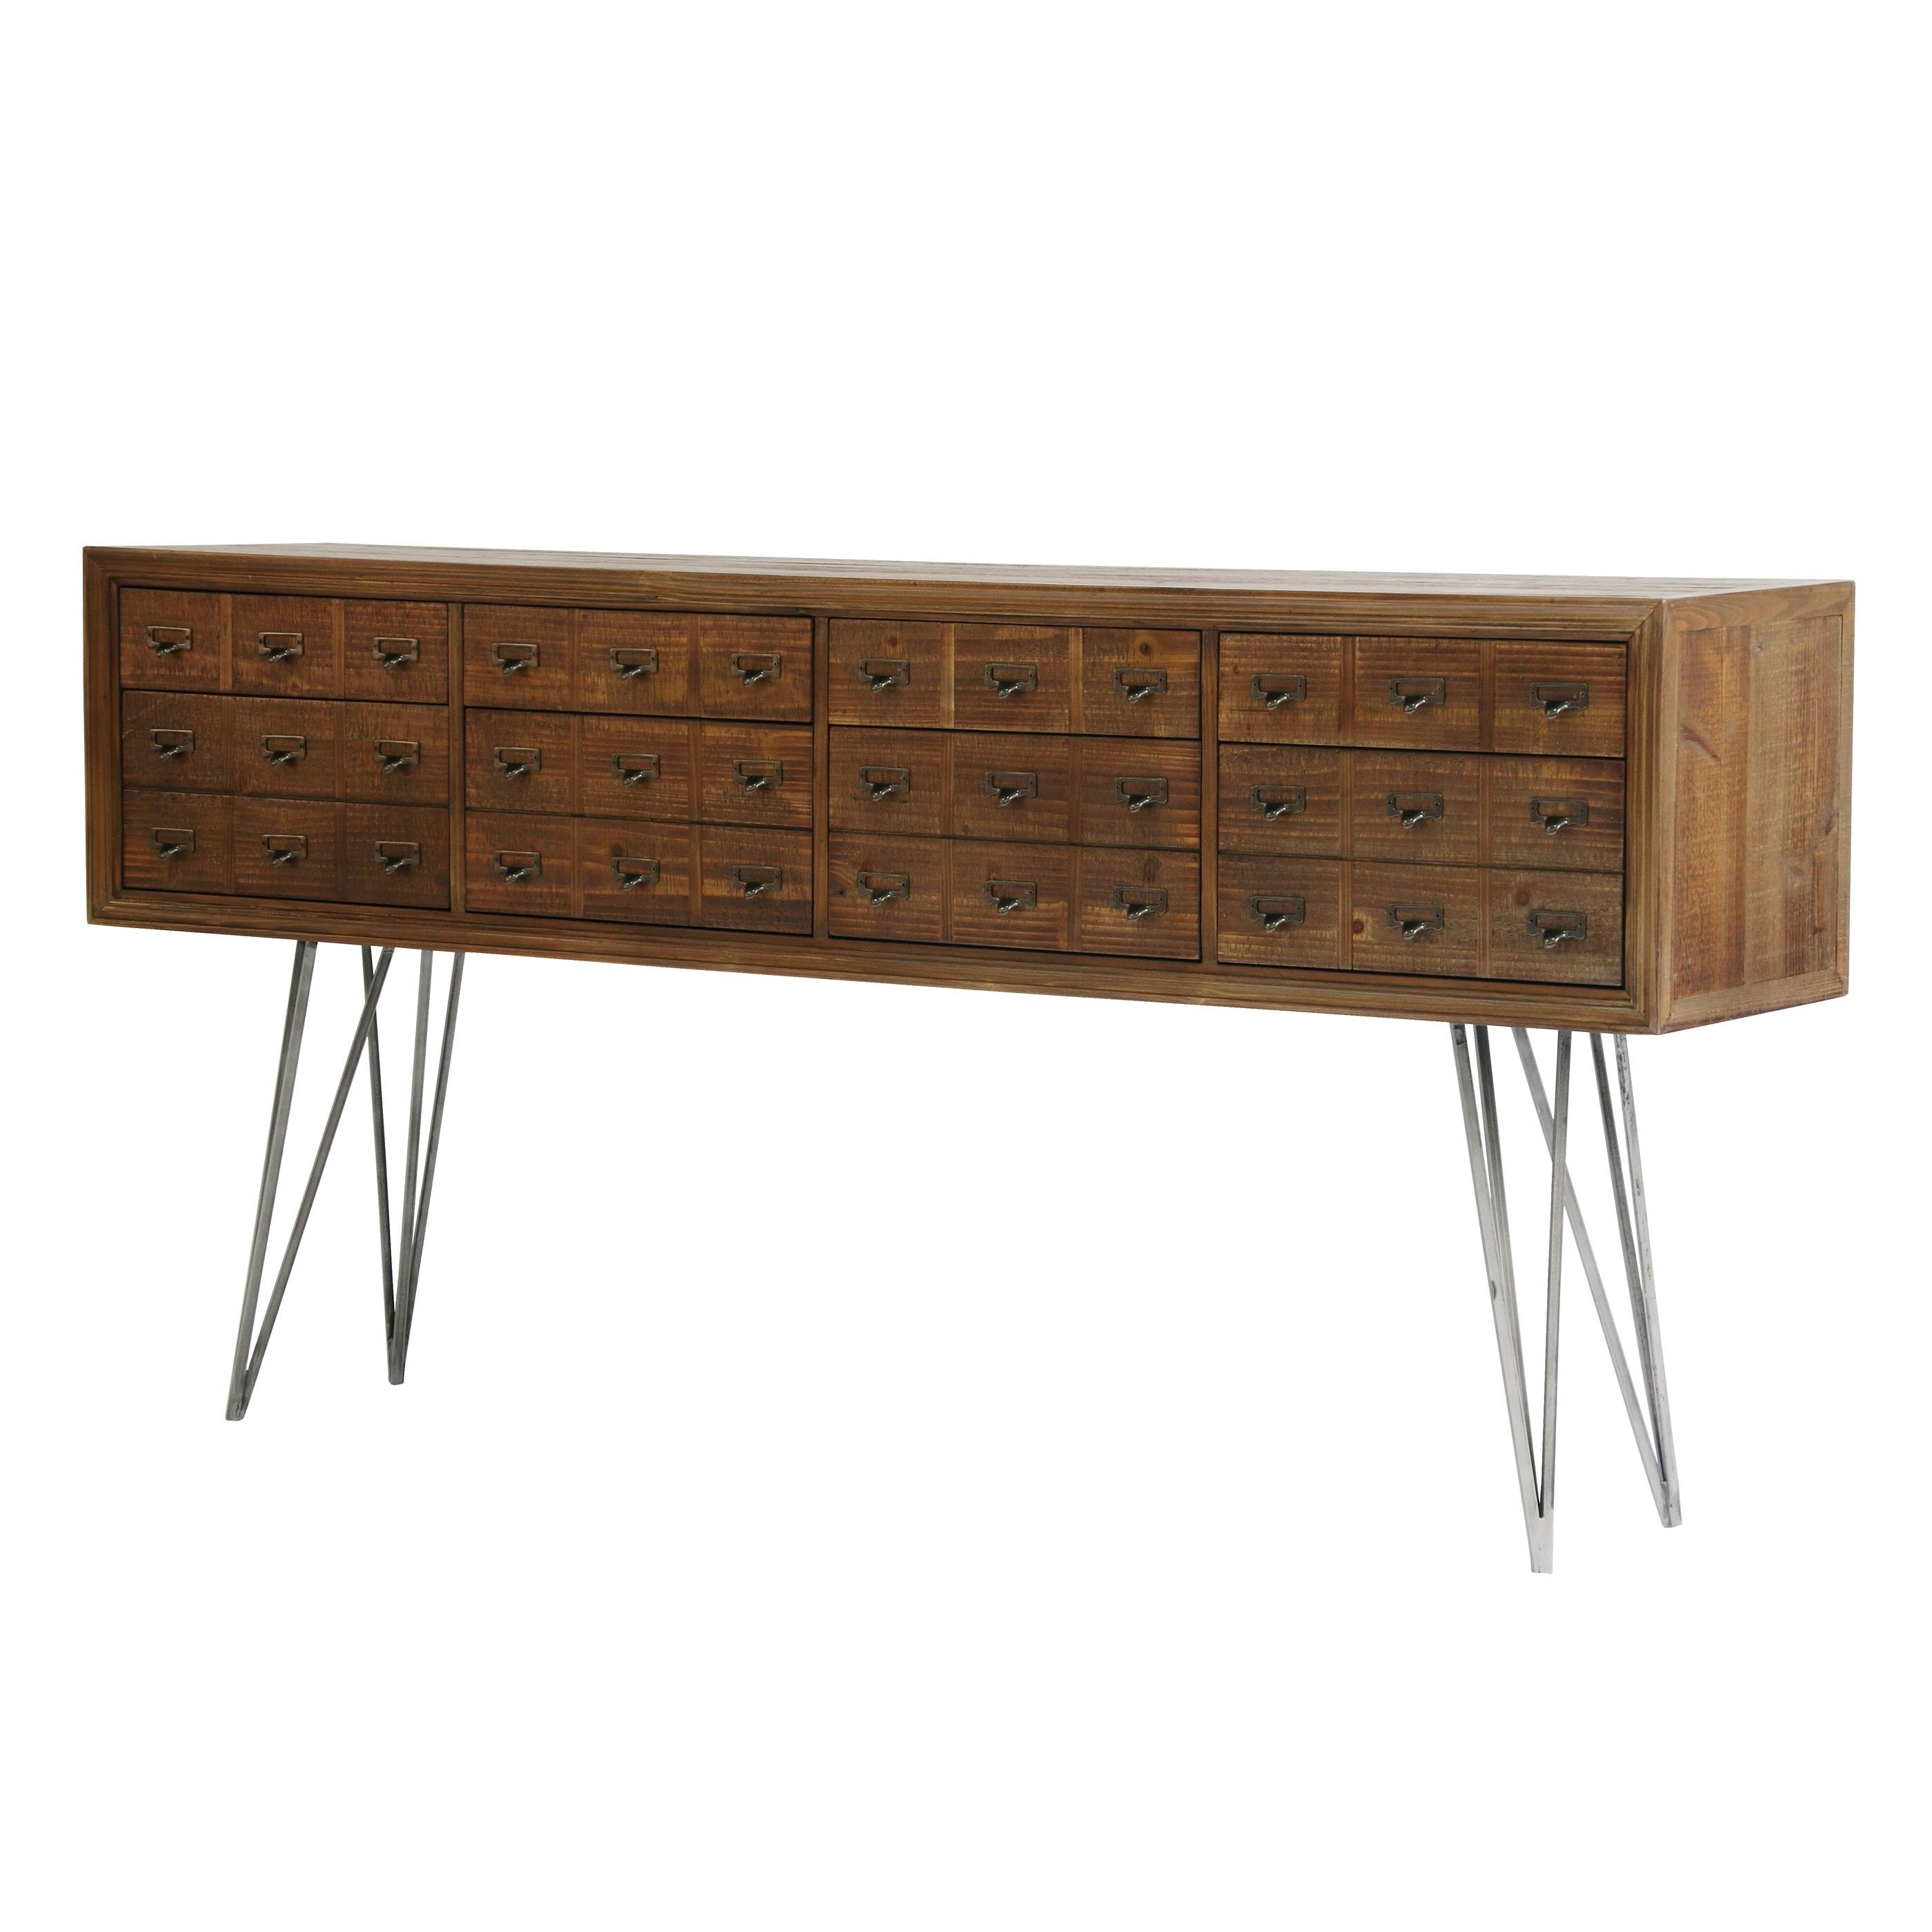 Trendy Shop Aurelle Home Craftsman Wood Sideboard – On Sale – Free Shipping For Amos Buffet Sideboards (View 8 of 20)